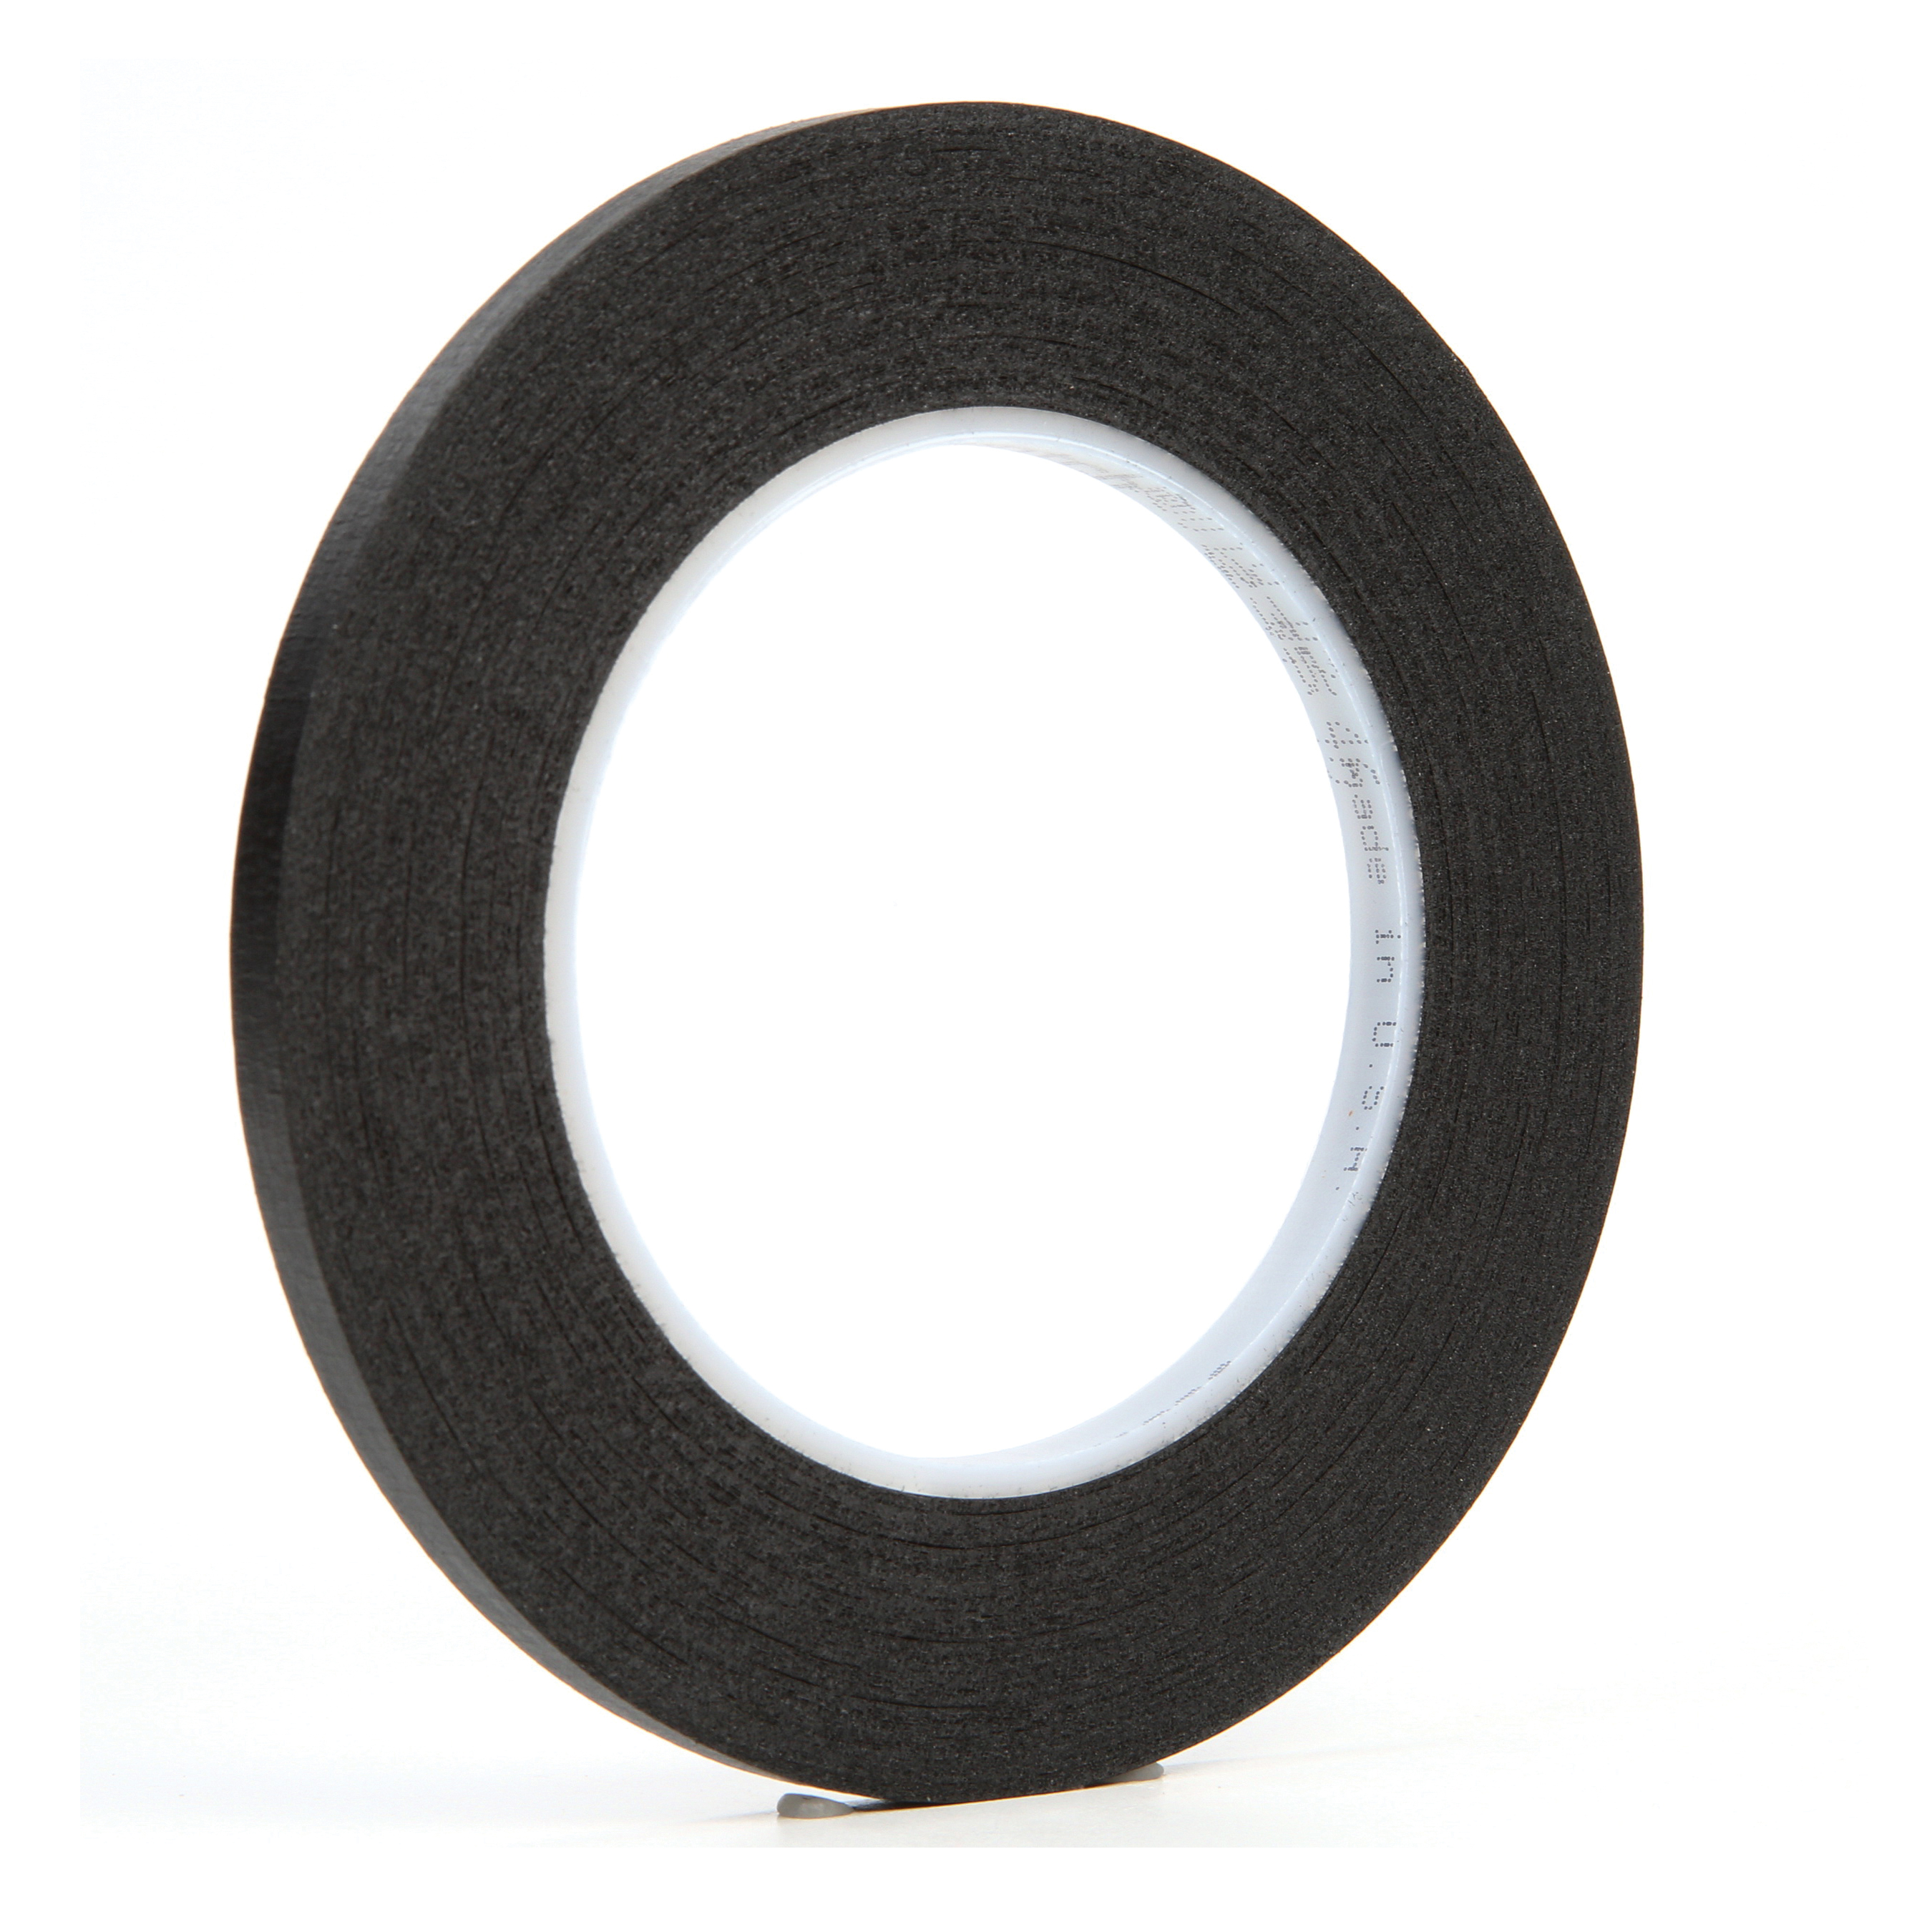 3M™ 021200-02837 Photographic Tape, 60 yd L x 1/4 in W, 7 mil THK, Rubber Adhesive, Crepe Paper Backing, Black